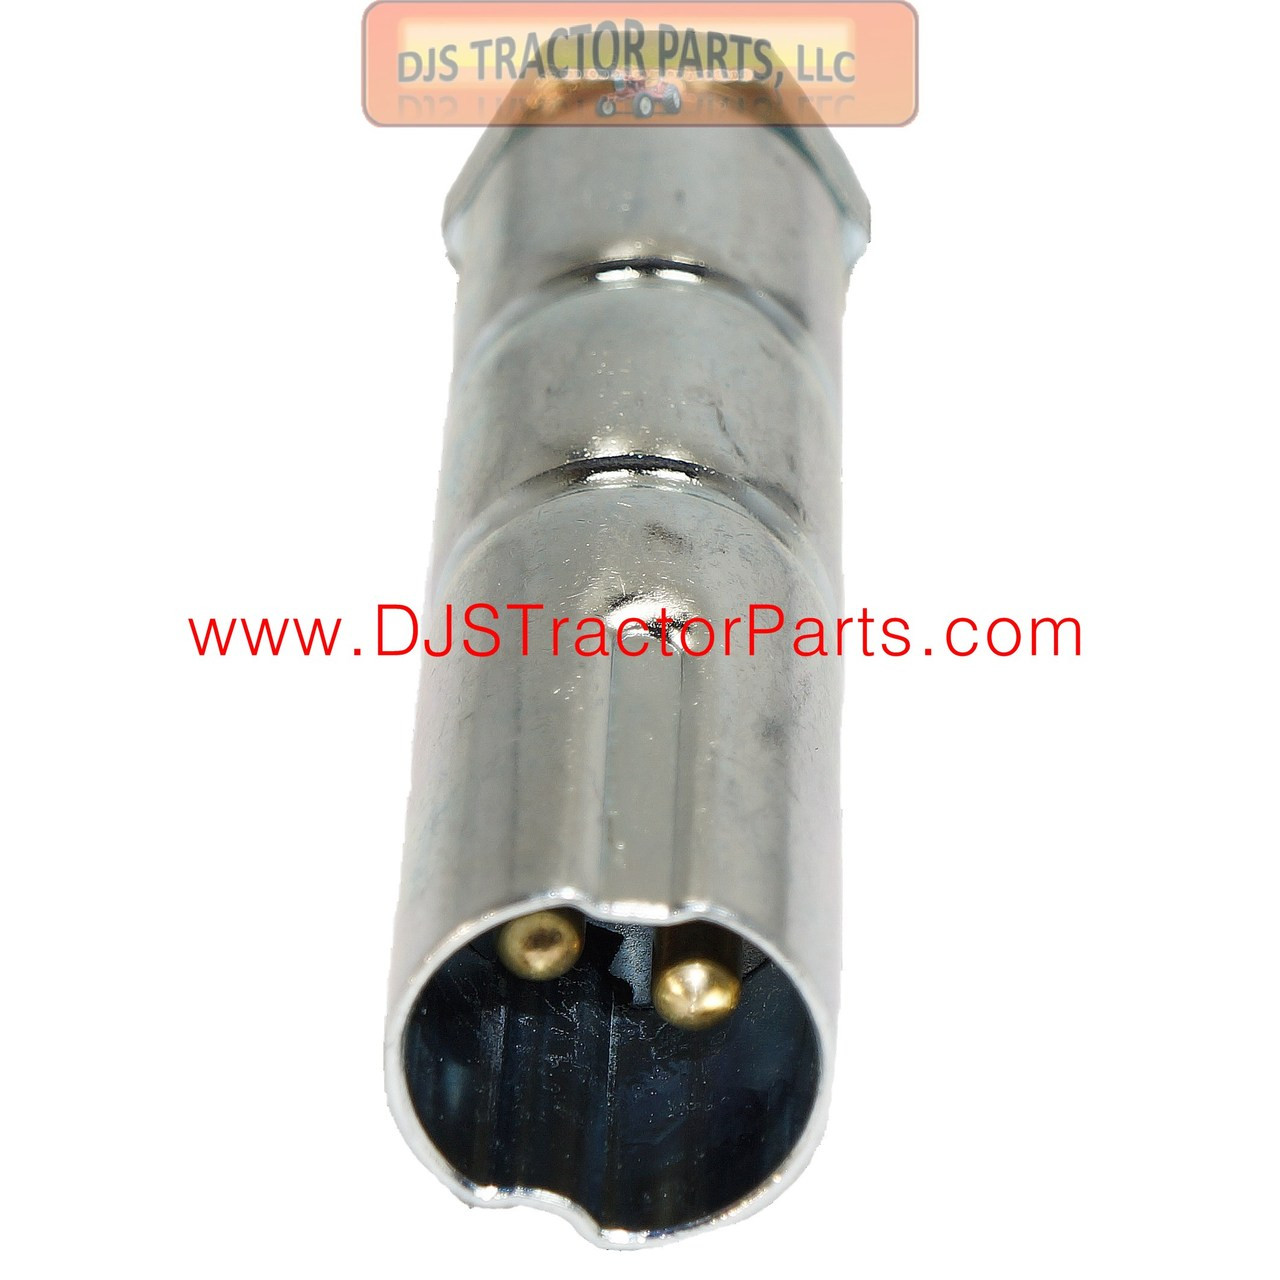 Auxiliary Male 2 Pin Connector Plug - AB-1868D